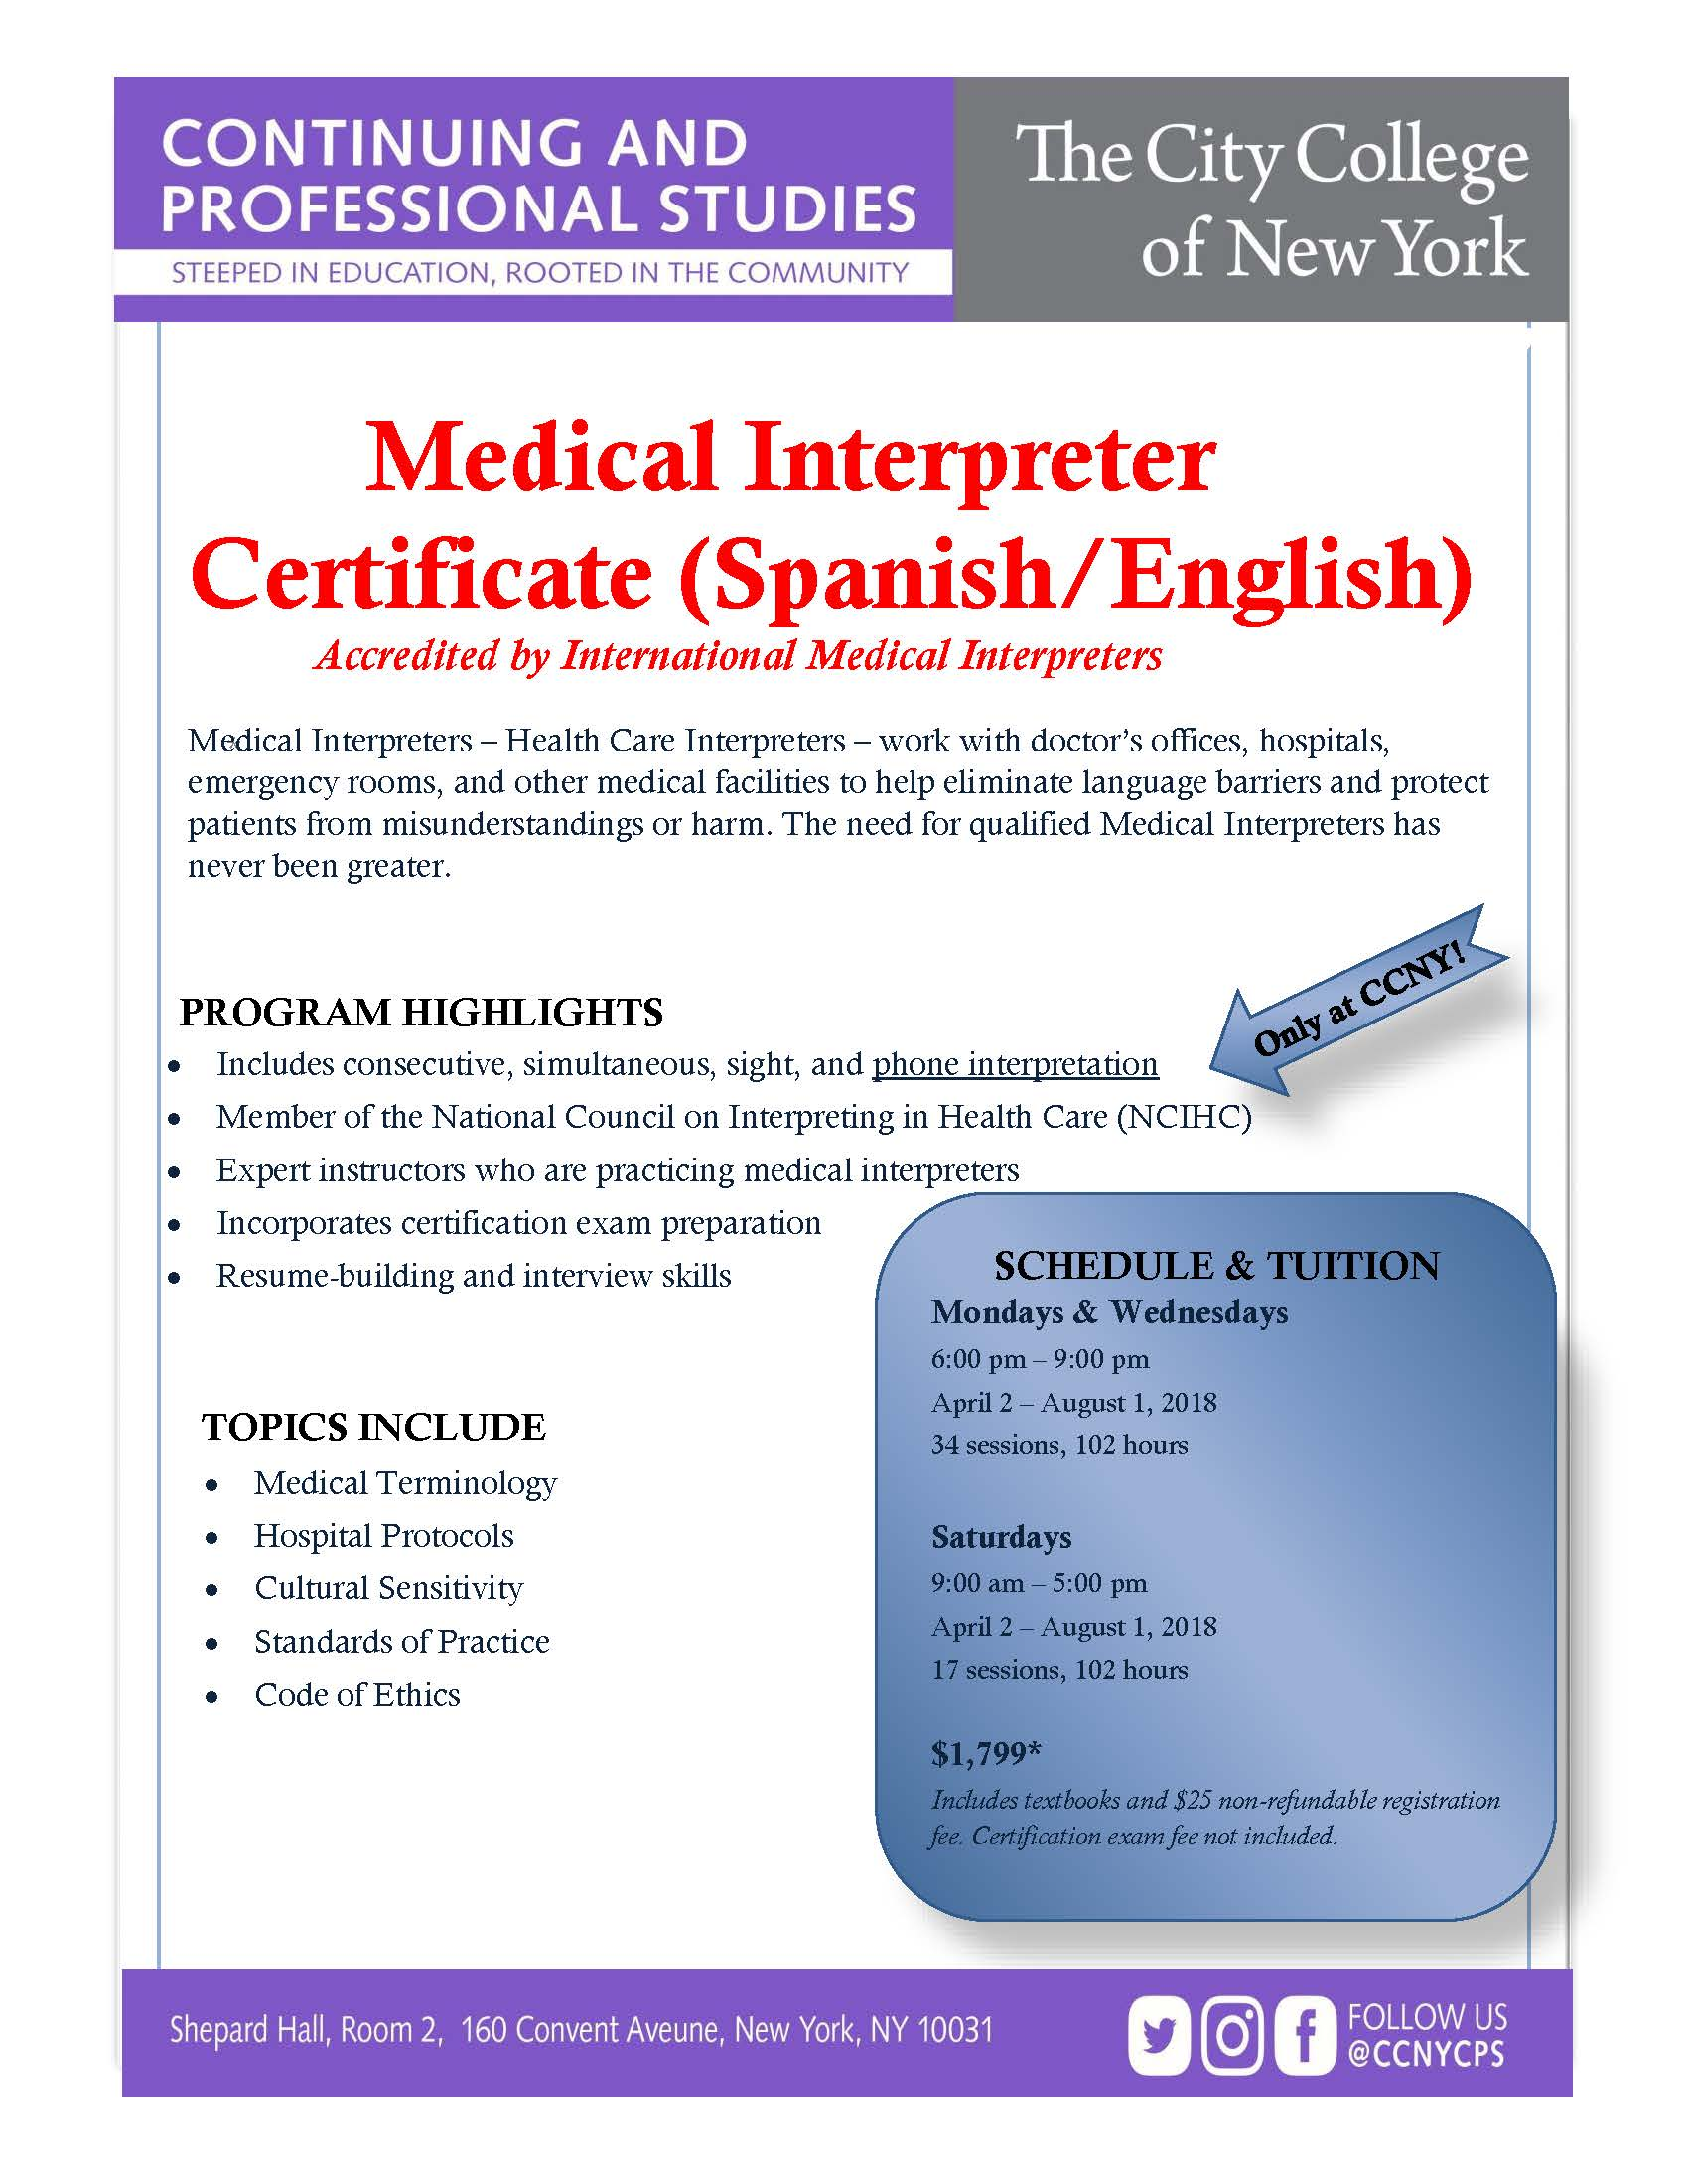 Awesome gallery of medical certification programs business cards medical interpreter certificate spanish english xflitez Choice Image